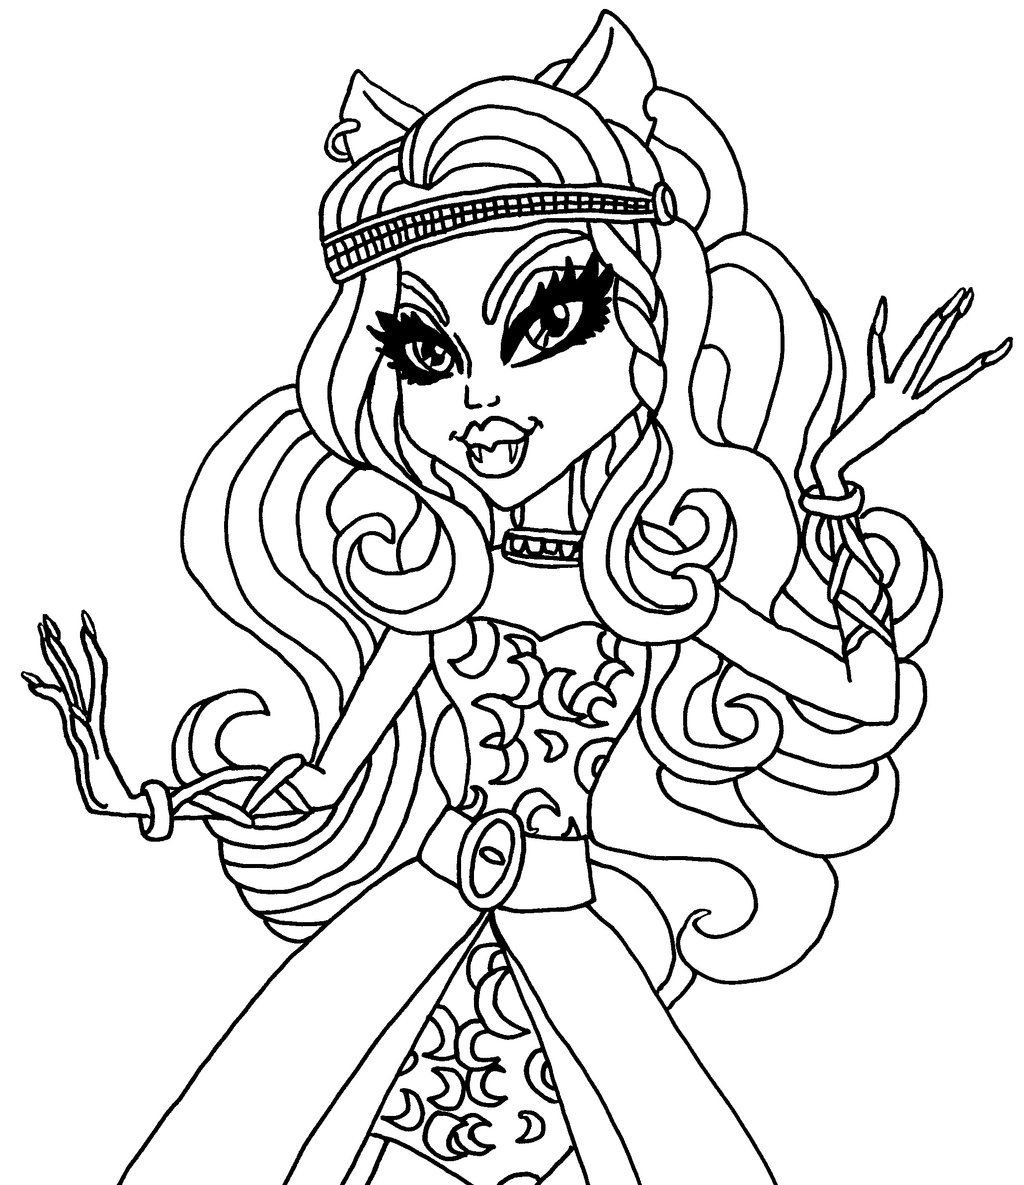 Jeux de coloriage monster high draculaura - Dessin monster ...